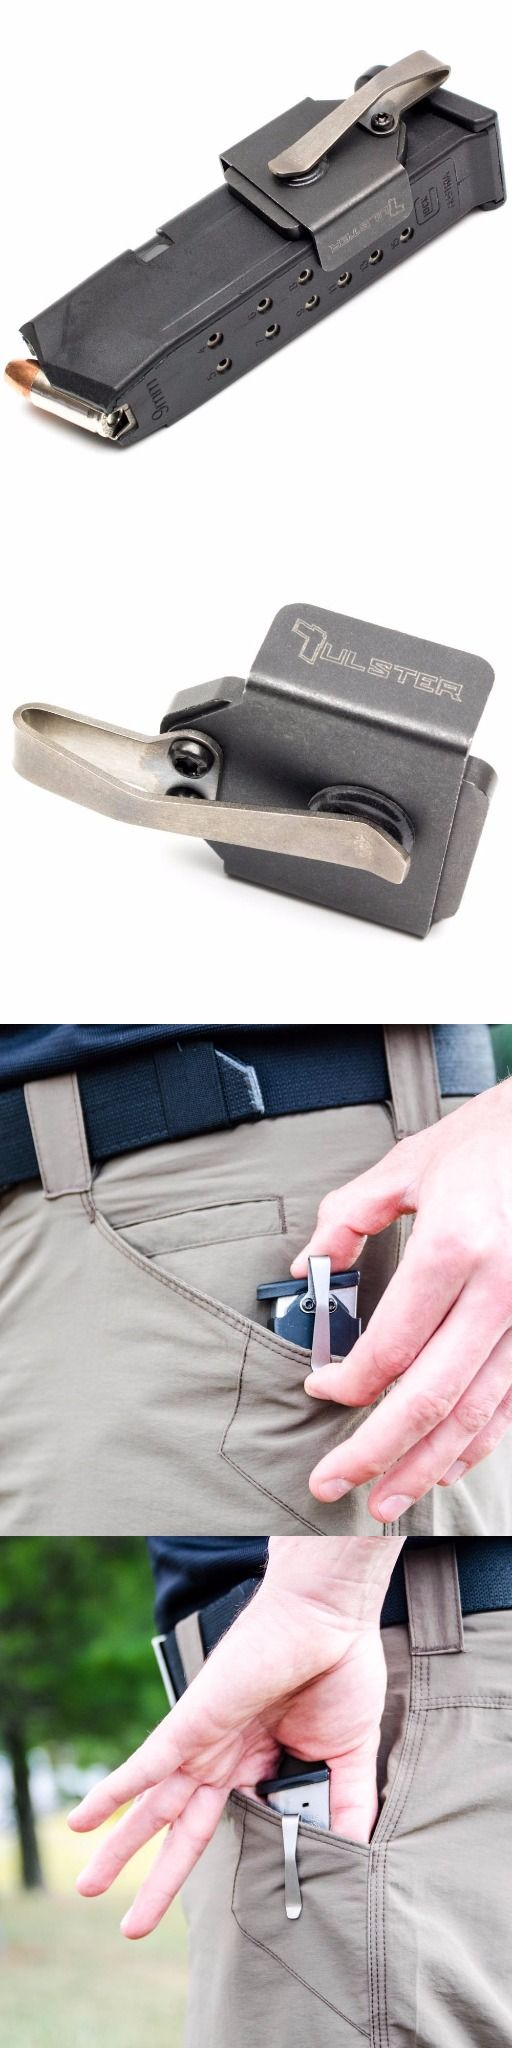 NeoMag - Magnetic In-The-Pocket Handgun Pistol Firearm Magazine Holder